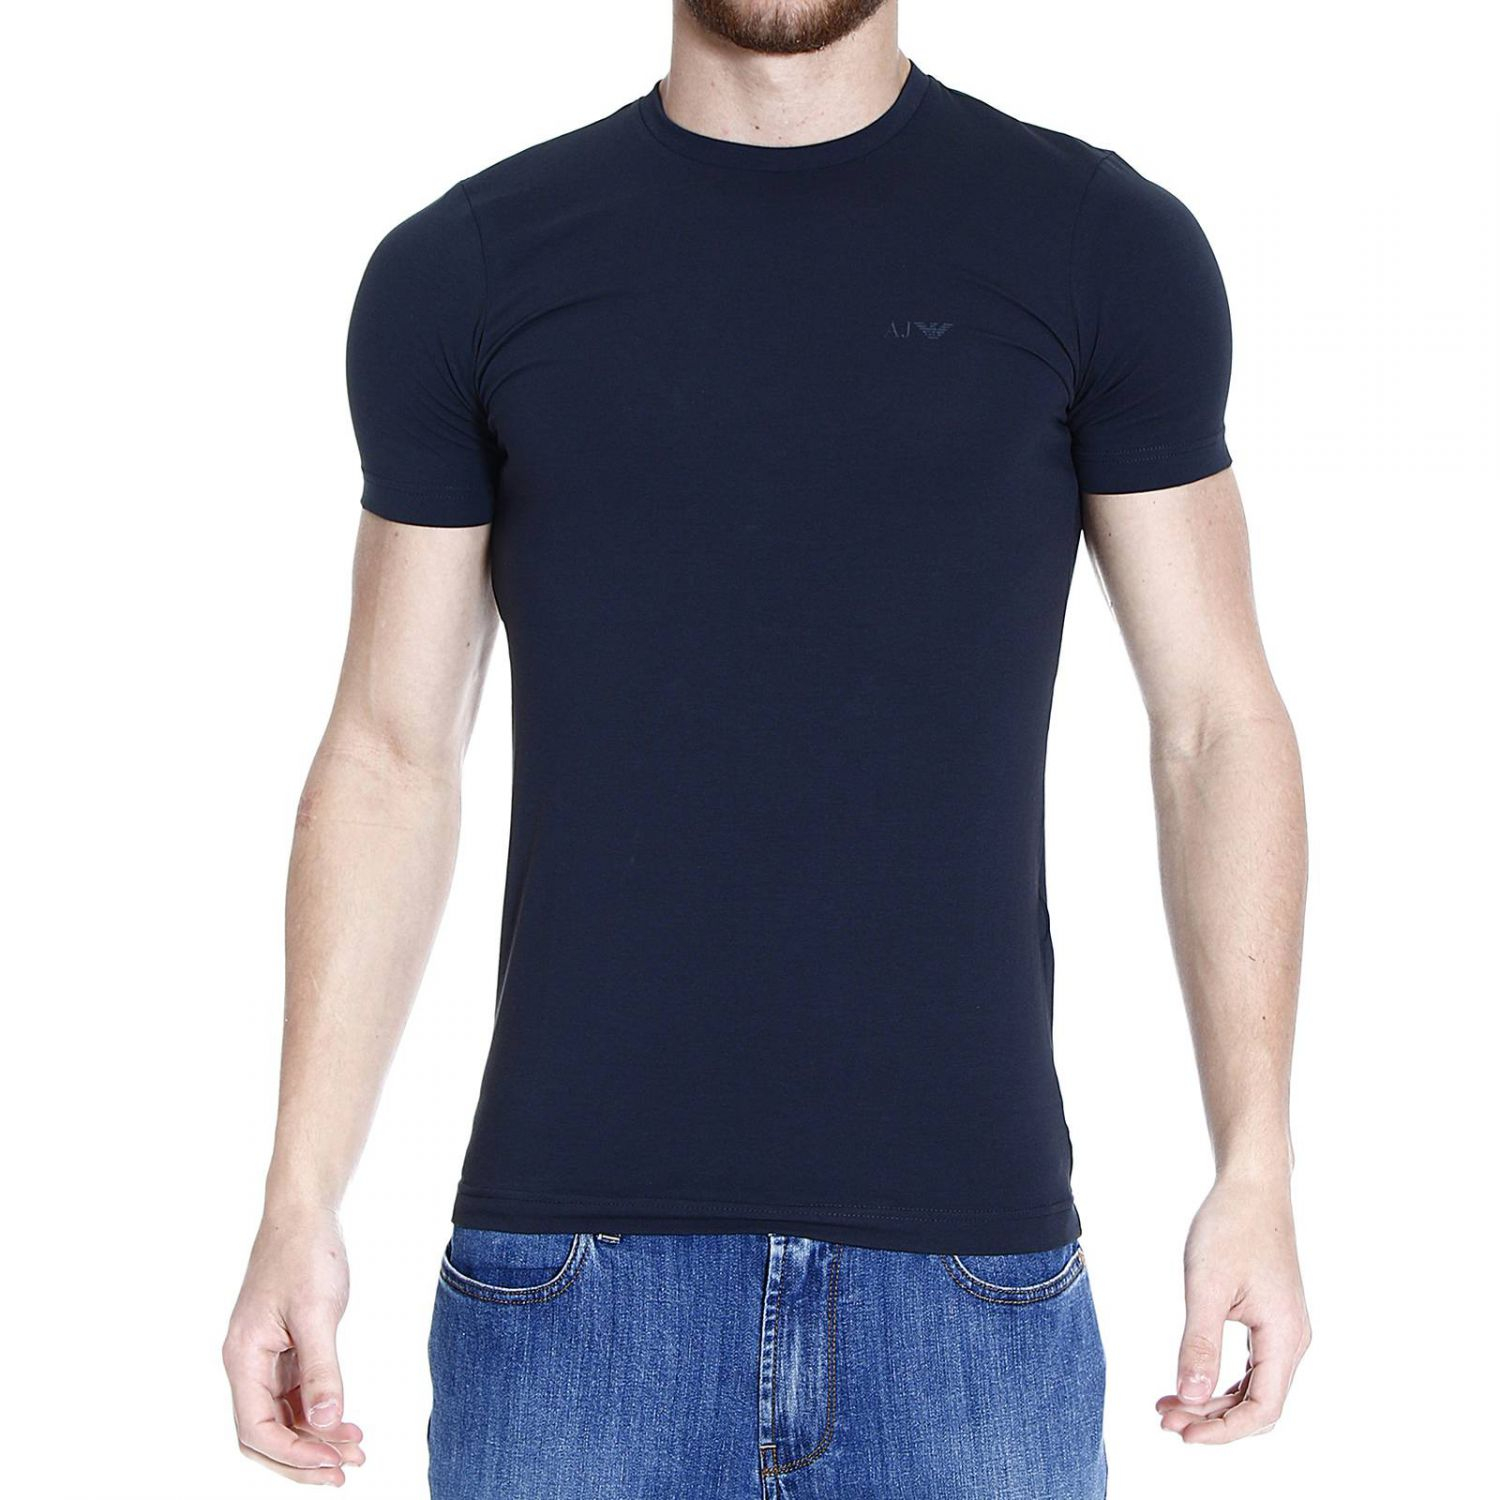 Giorgio Armani T Shirt Half Sleeve Crew Neck Basic In Blue